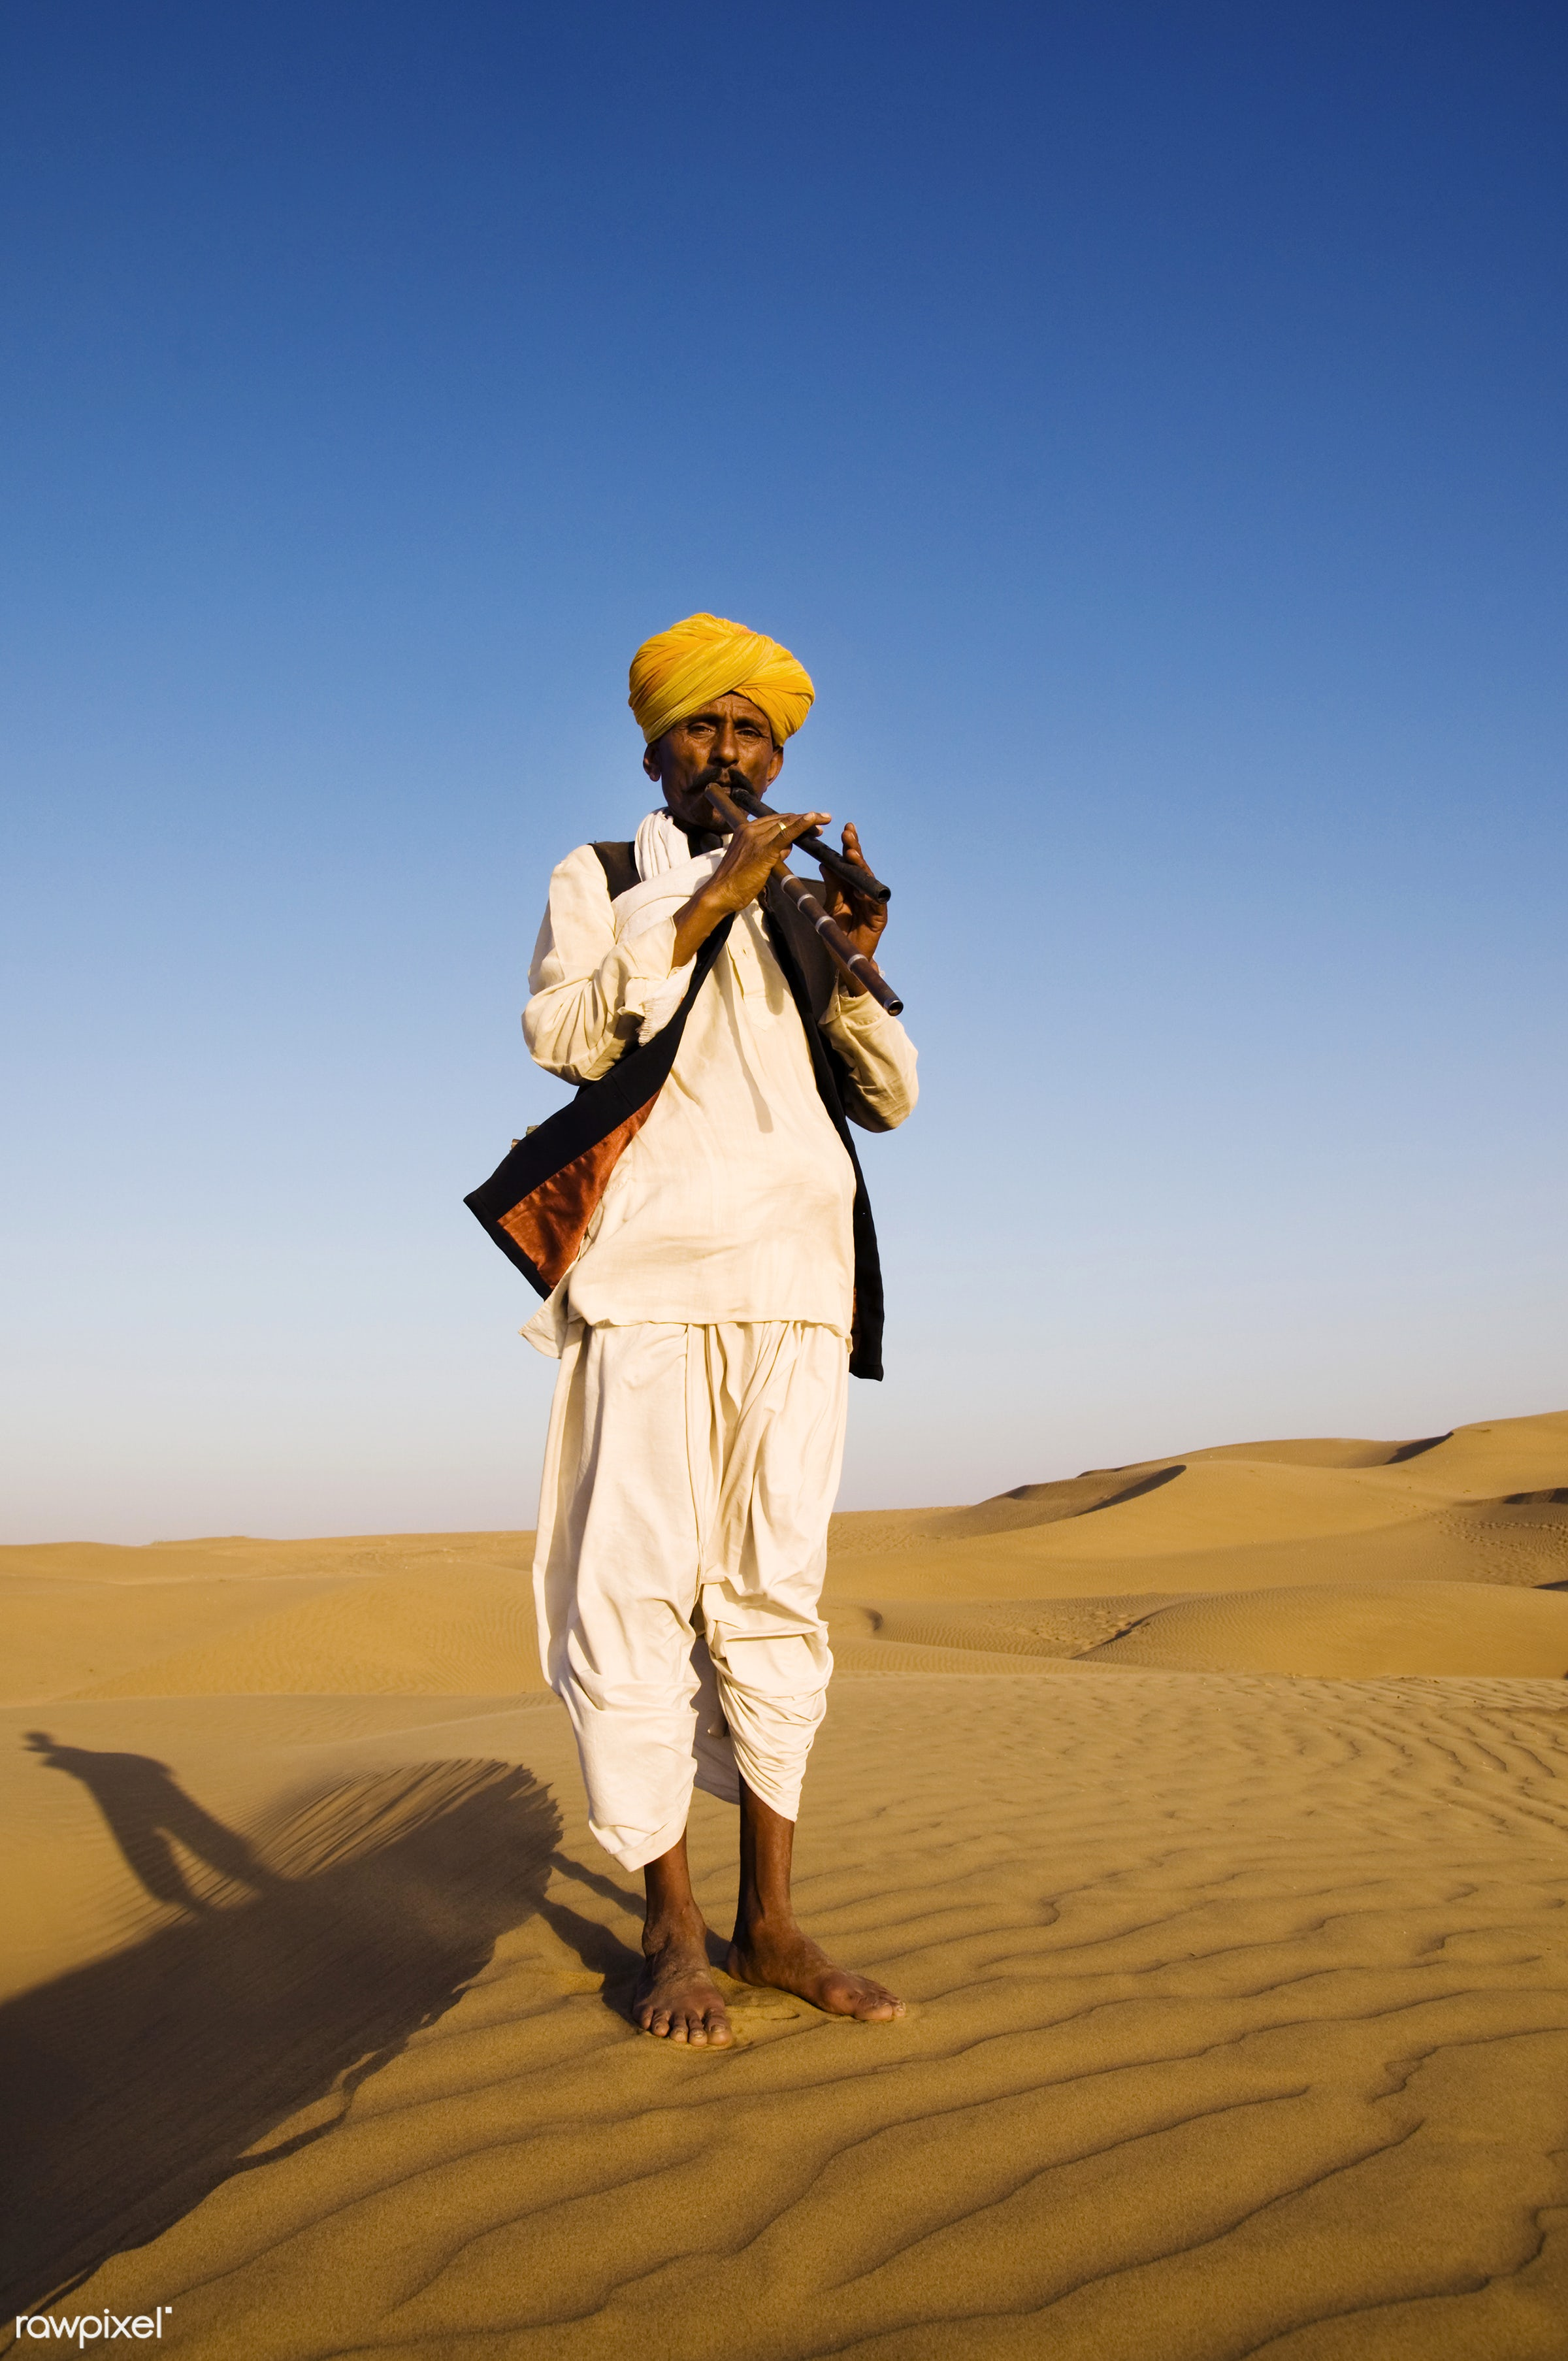 Indian man playing wind pipe in the desert - india, asia, culture, day, desert, exoticism, full length, heat, indian, indian...